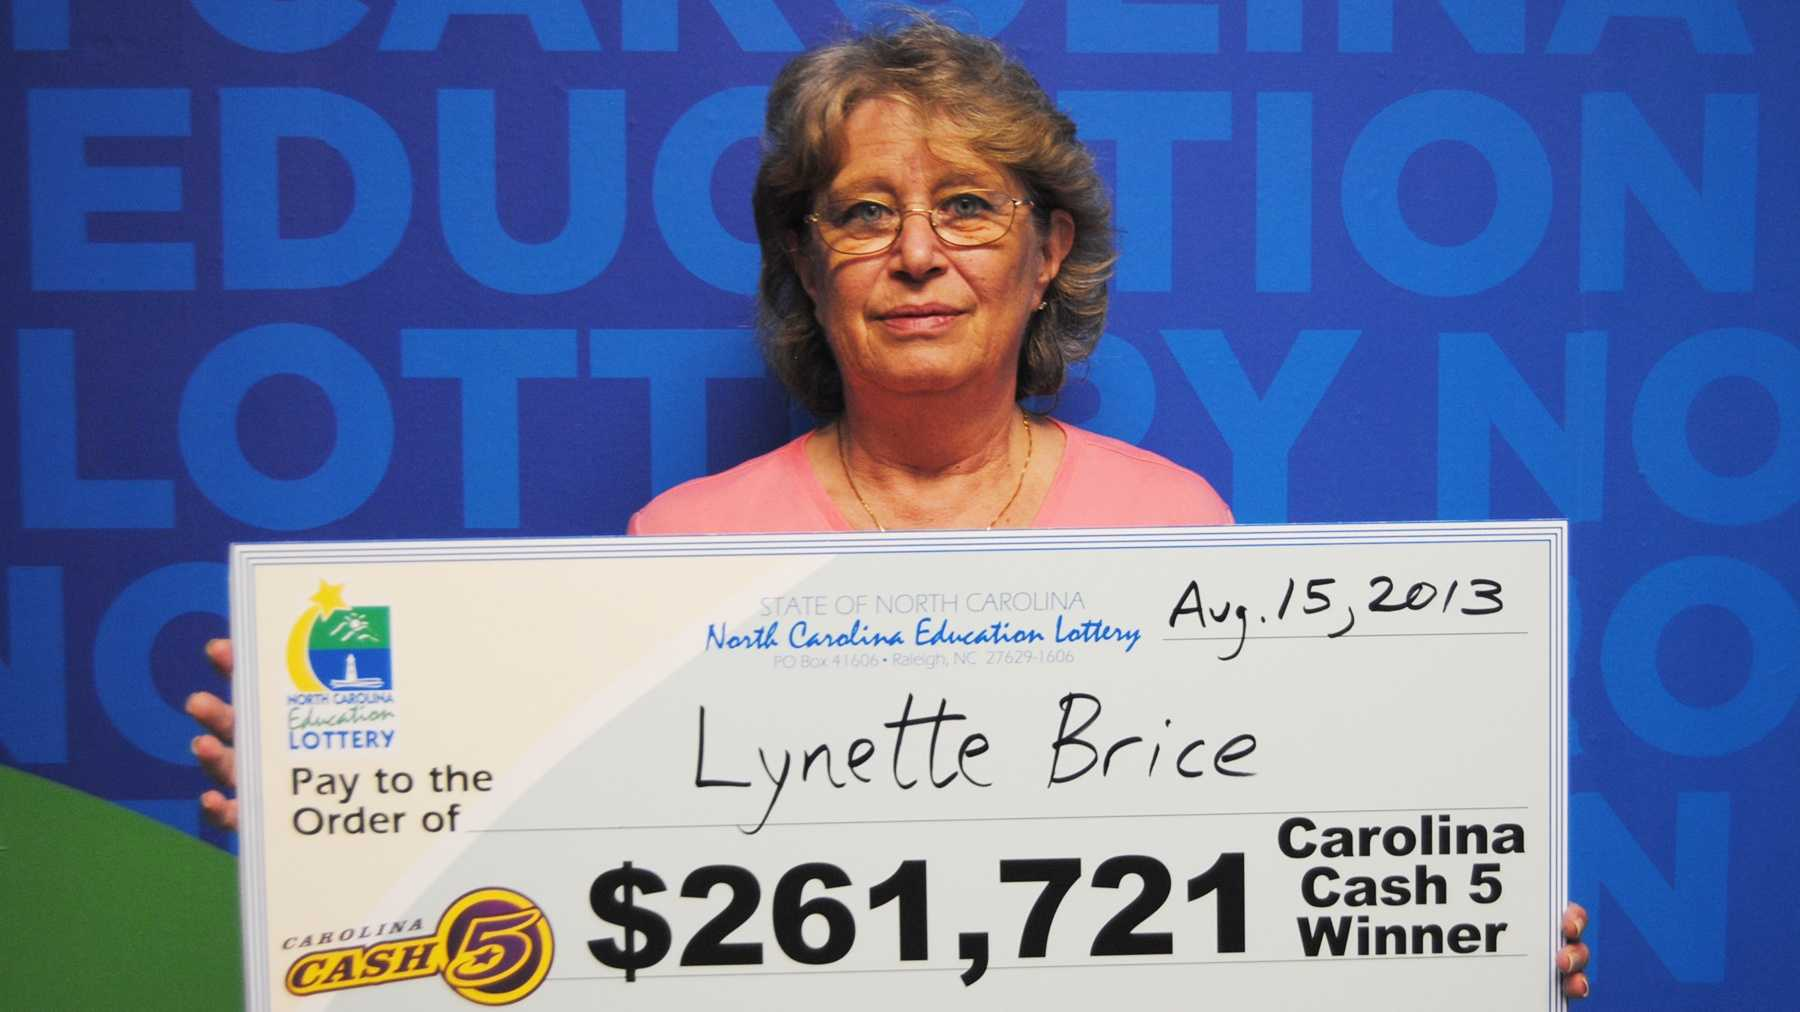 Lynette Brice (photo from North Carolina Education Lottery)